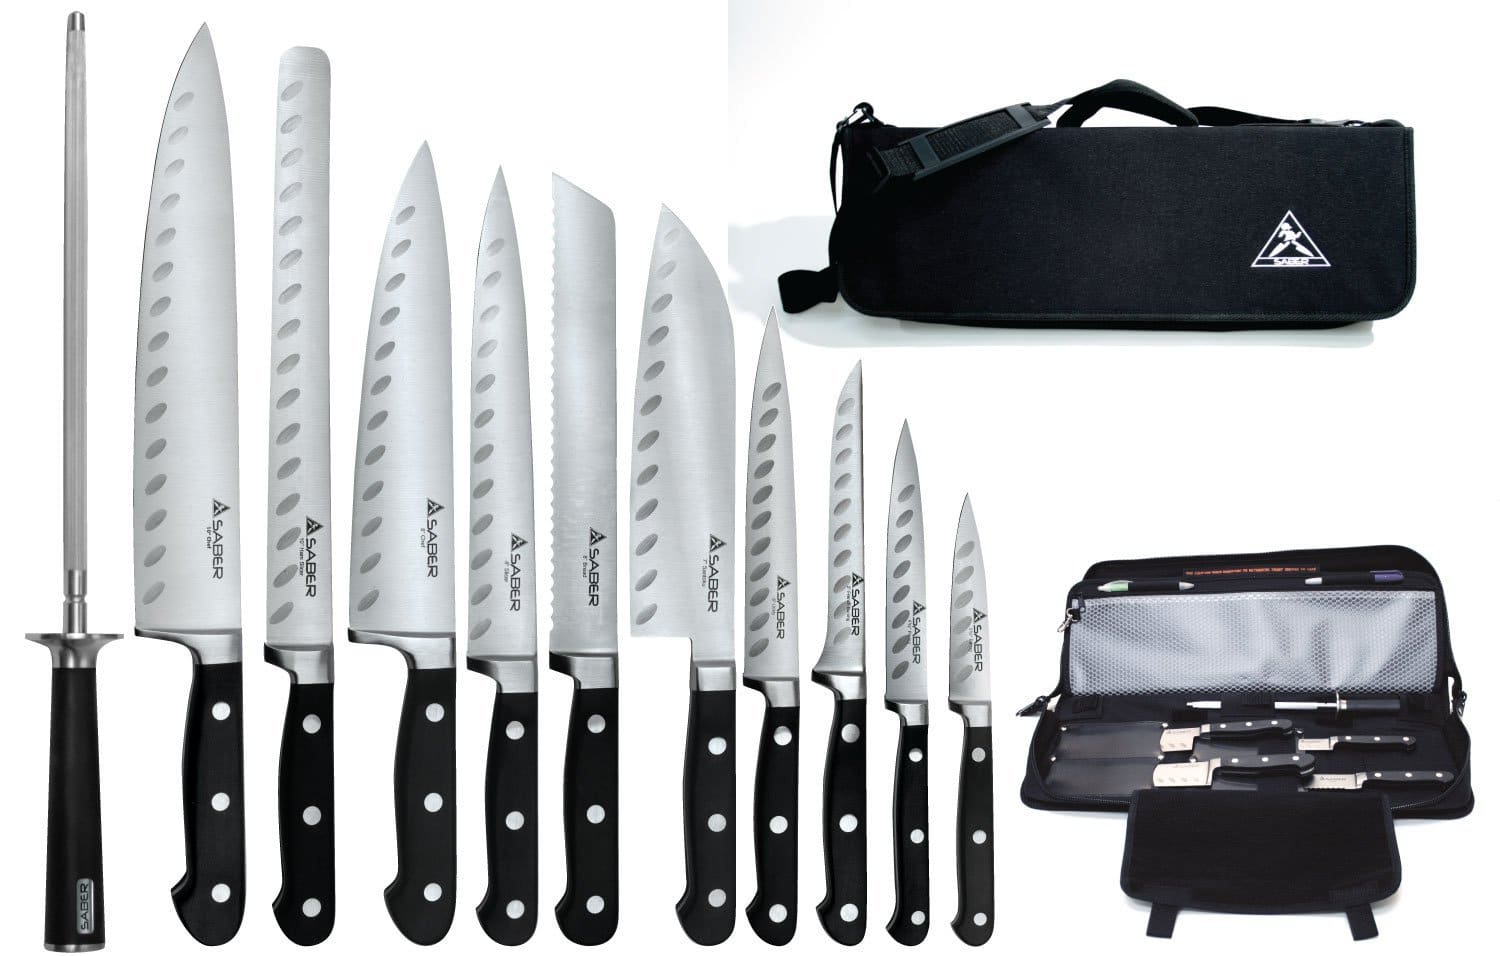 top 10 best kitchen knife sets 2018 review rh topportalreview com top kitchen knife sets 2017 sharpest kitchen knife set